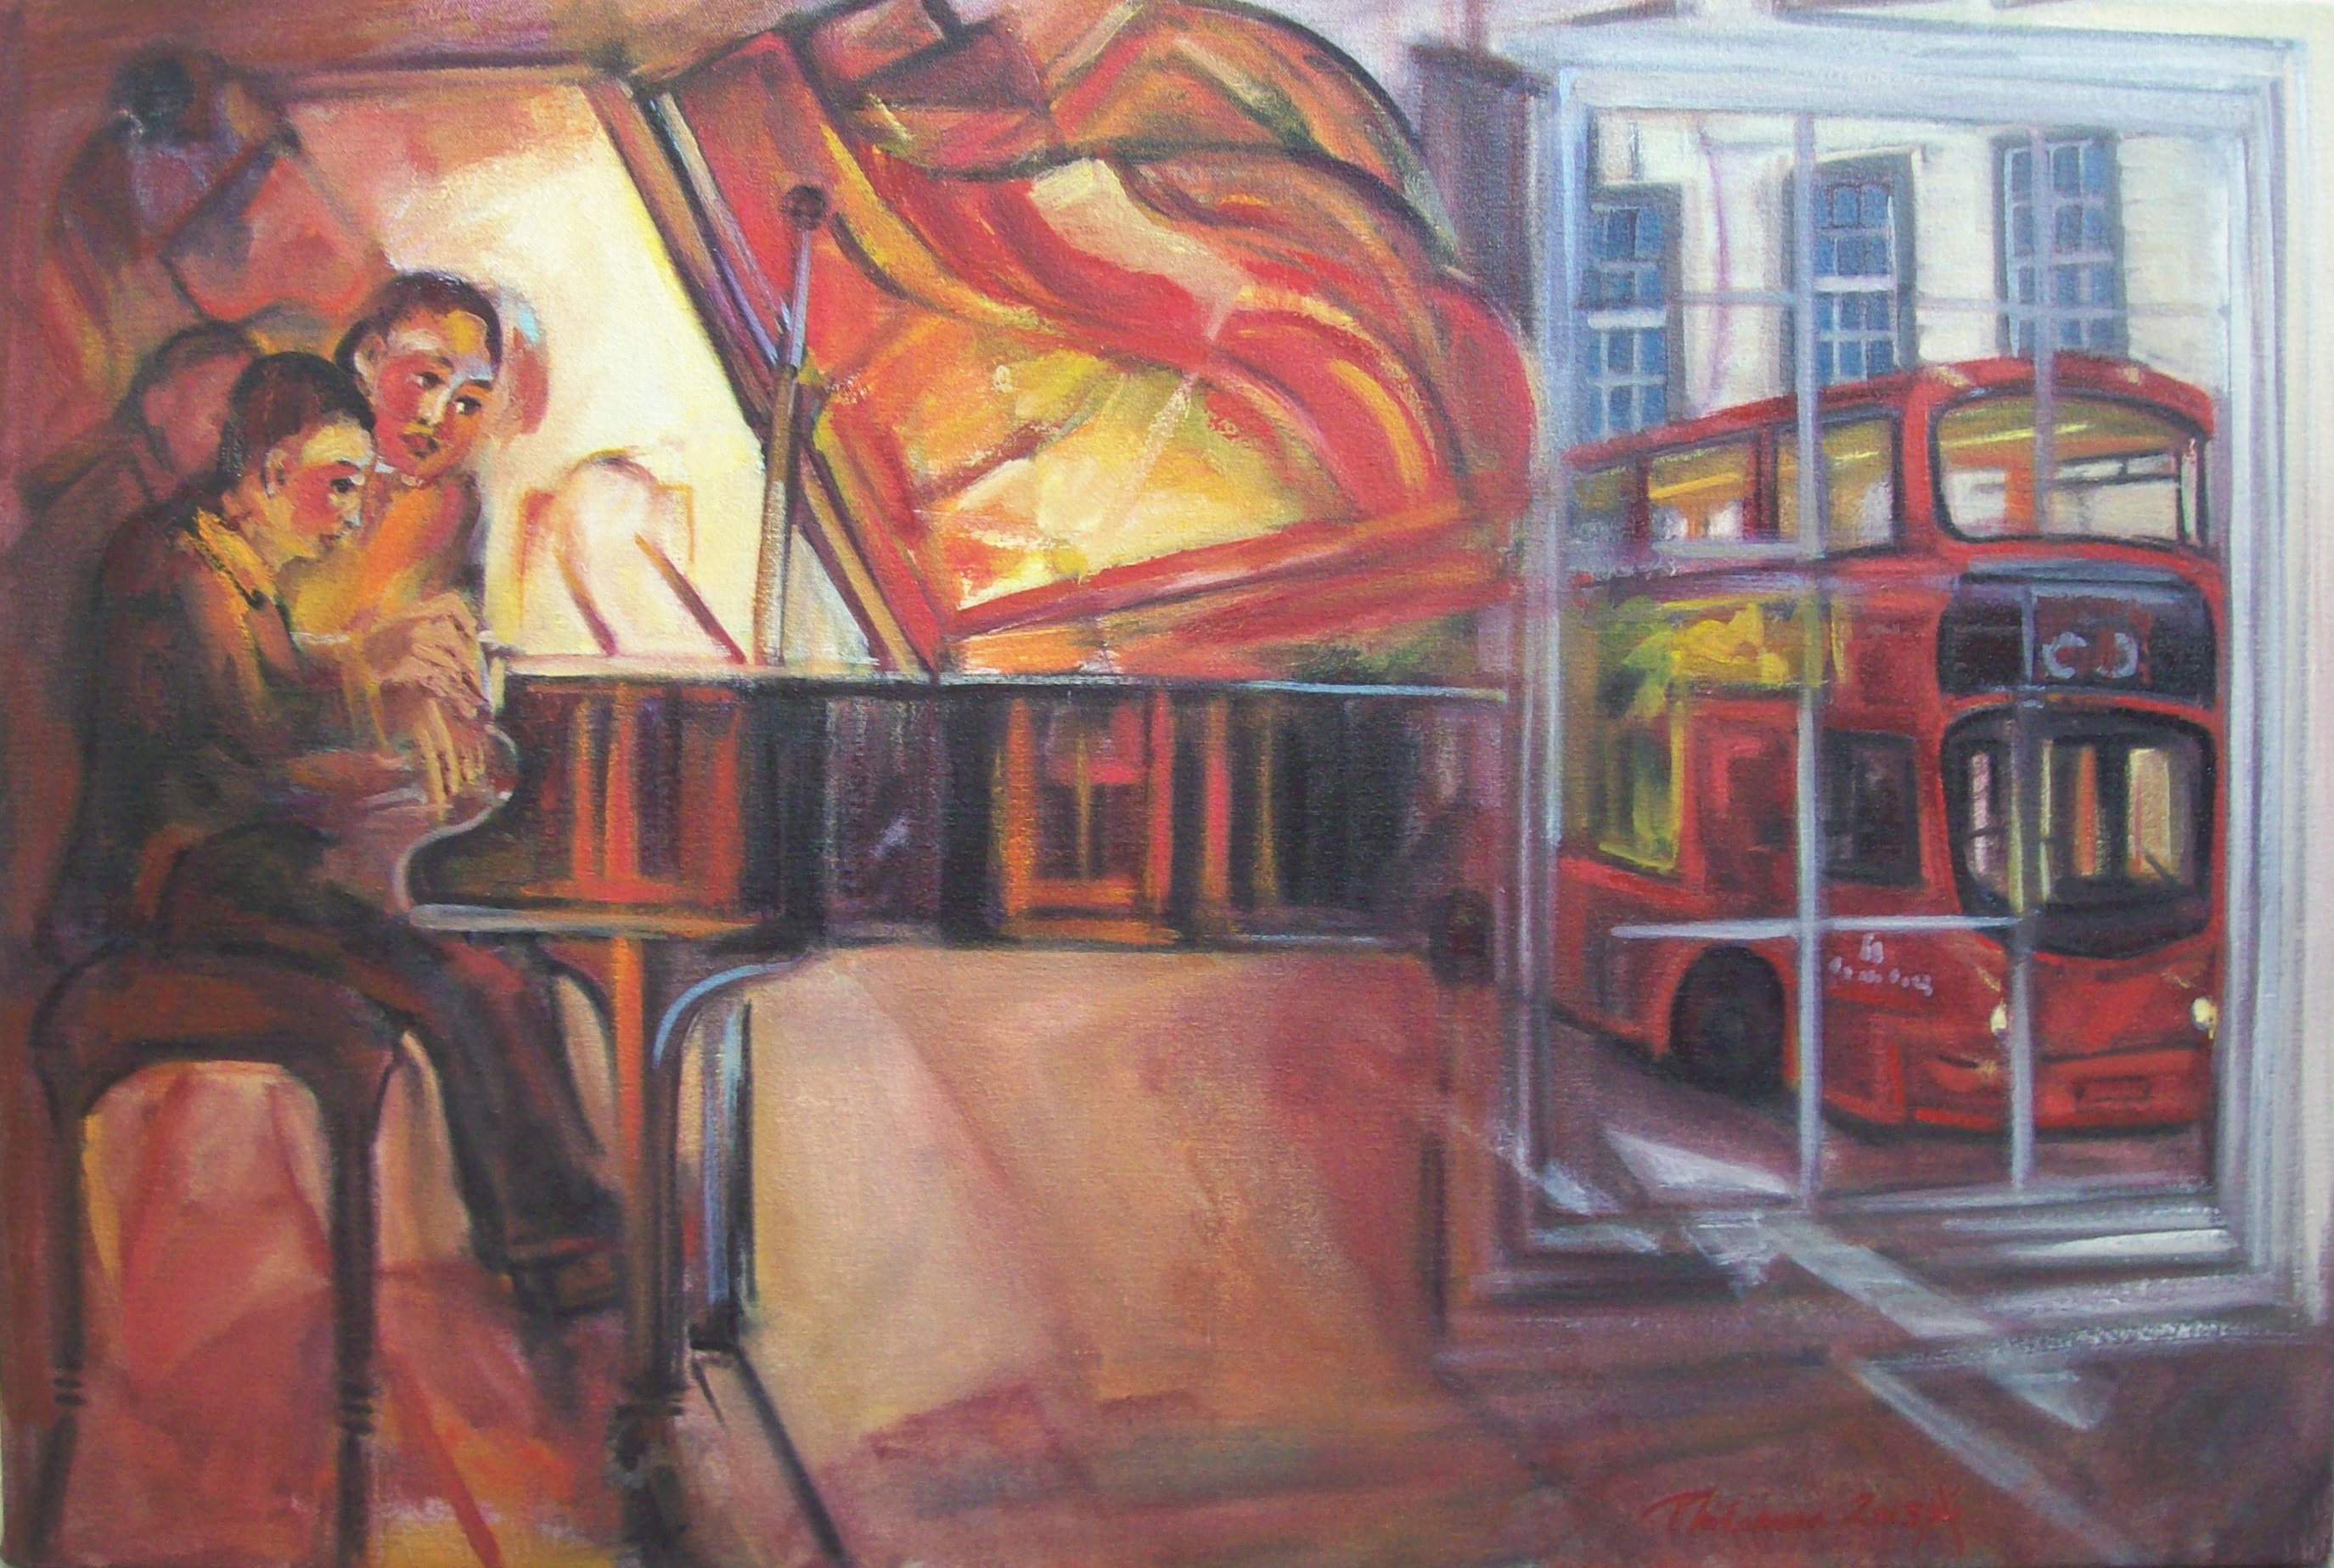 Picture entitled 'Grand Piano' by Philomena Harmsworth